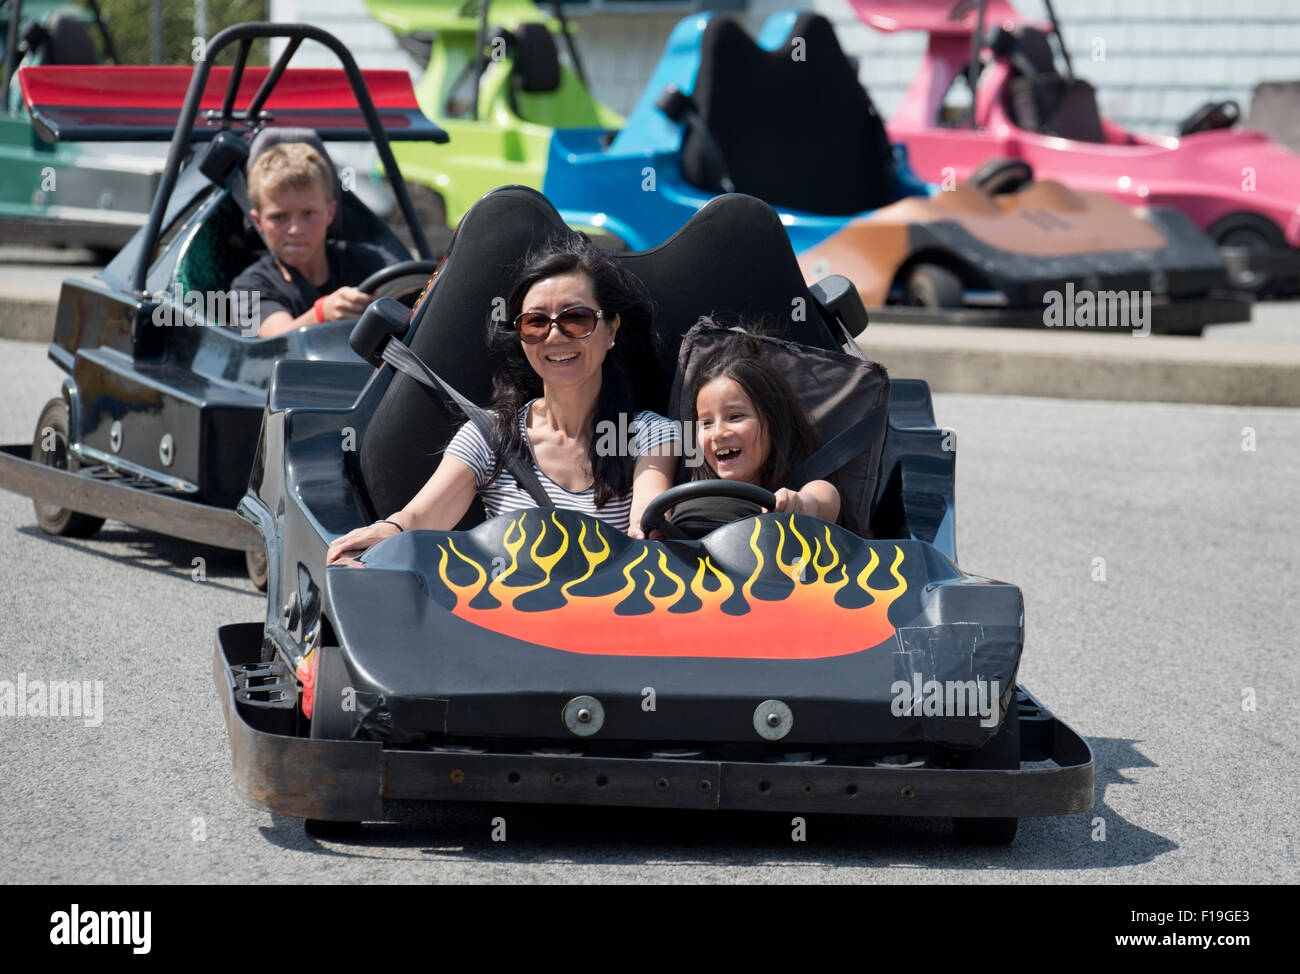 Old Go Kart Stock Photos & Old Go Kart Stock Images - Alamy